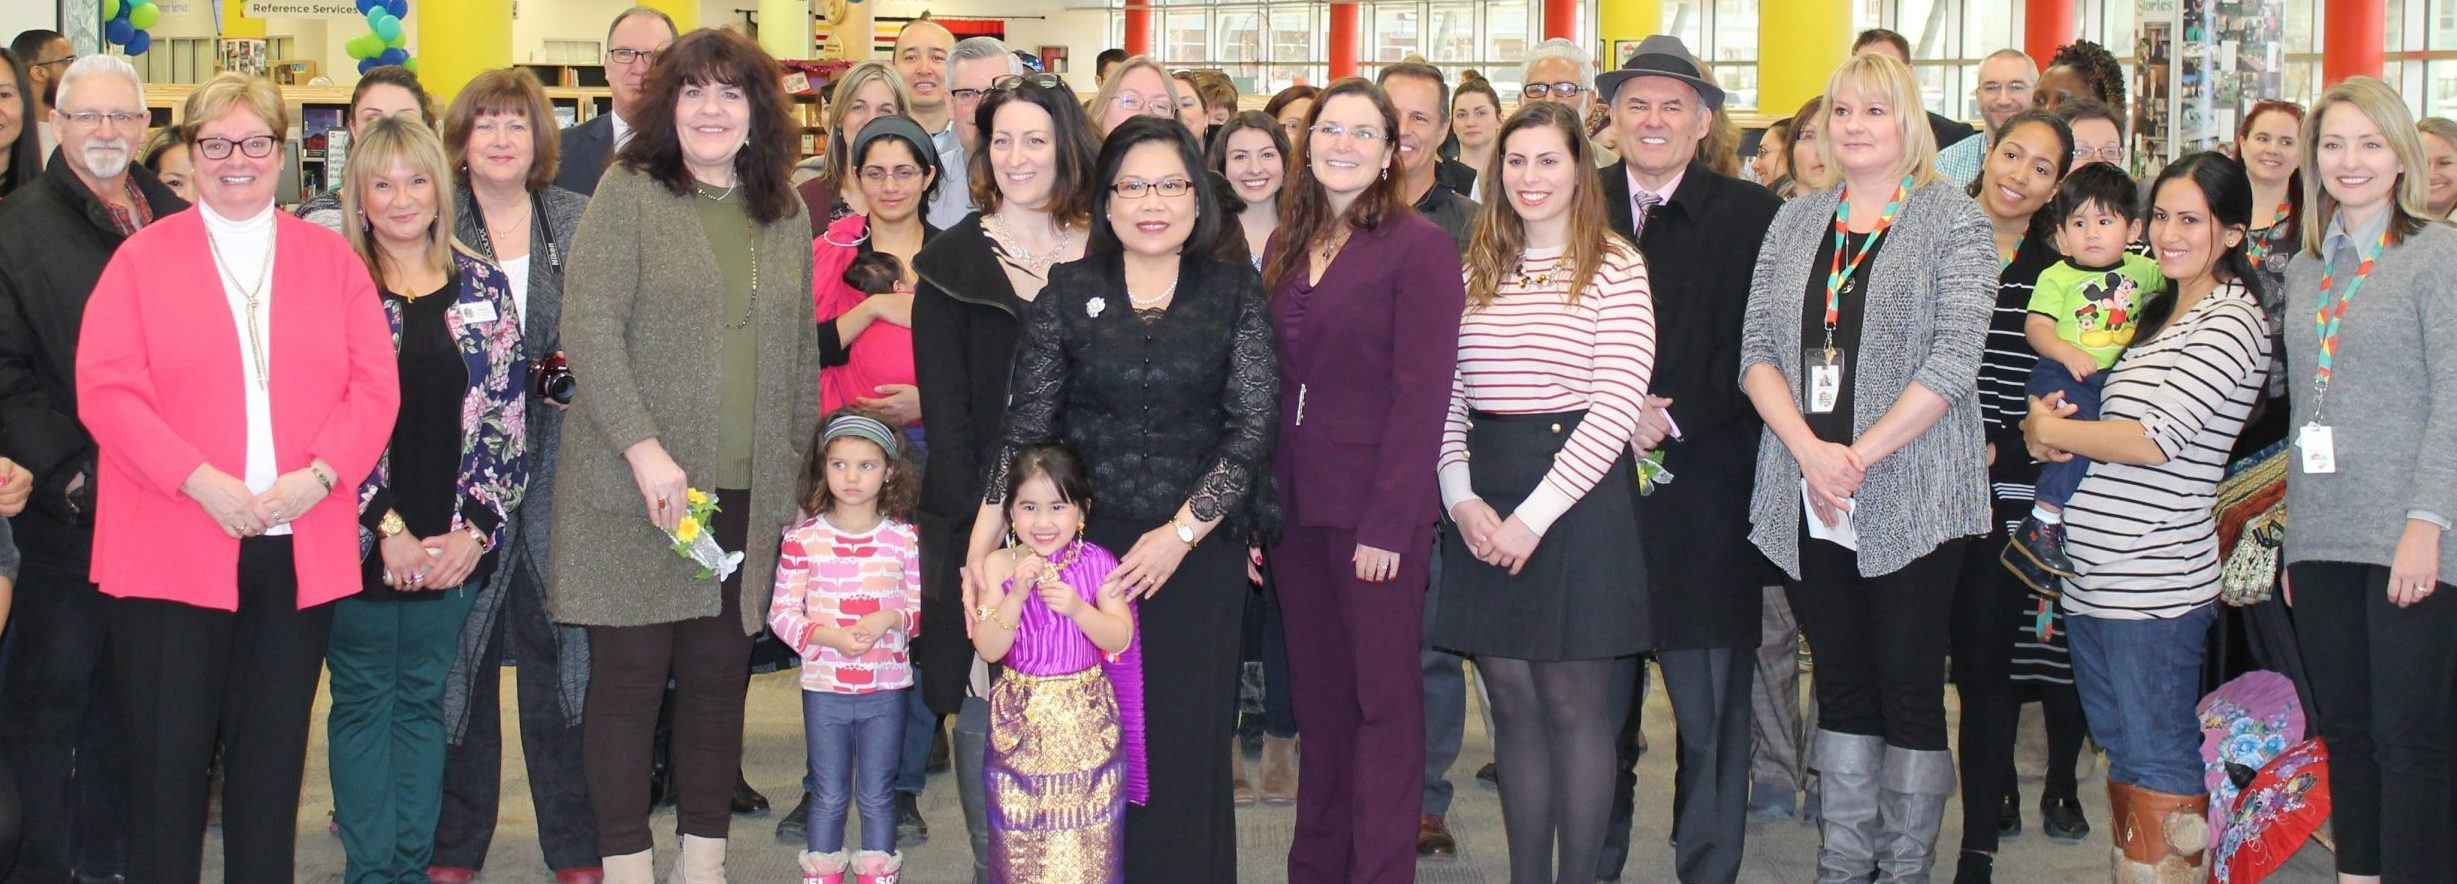 PICS: Royal Thai Consulate Visits Wood Buffalo Regional Library